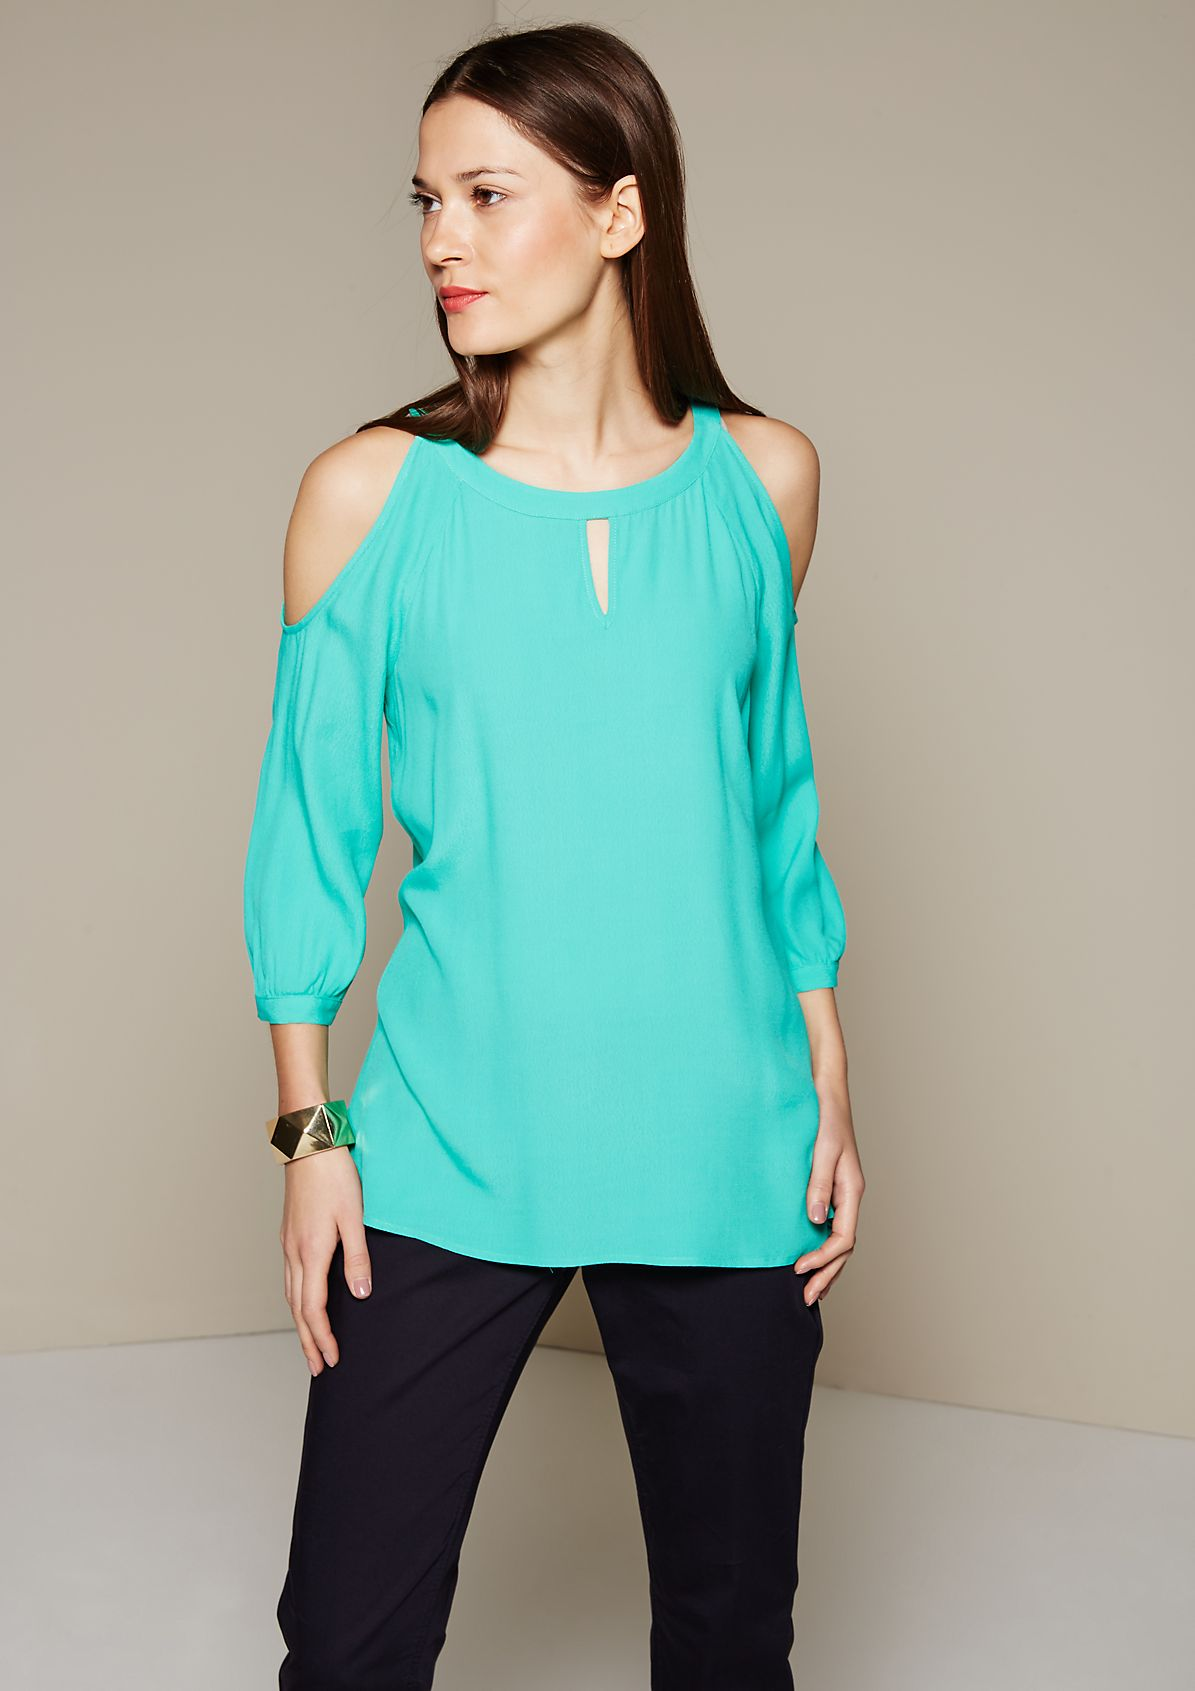 Summery blouse with beautiful details and 3/4-length sleeves from s.Oliver